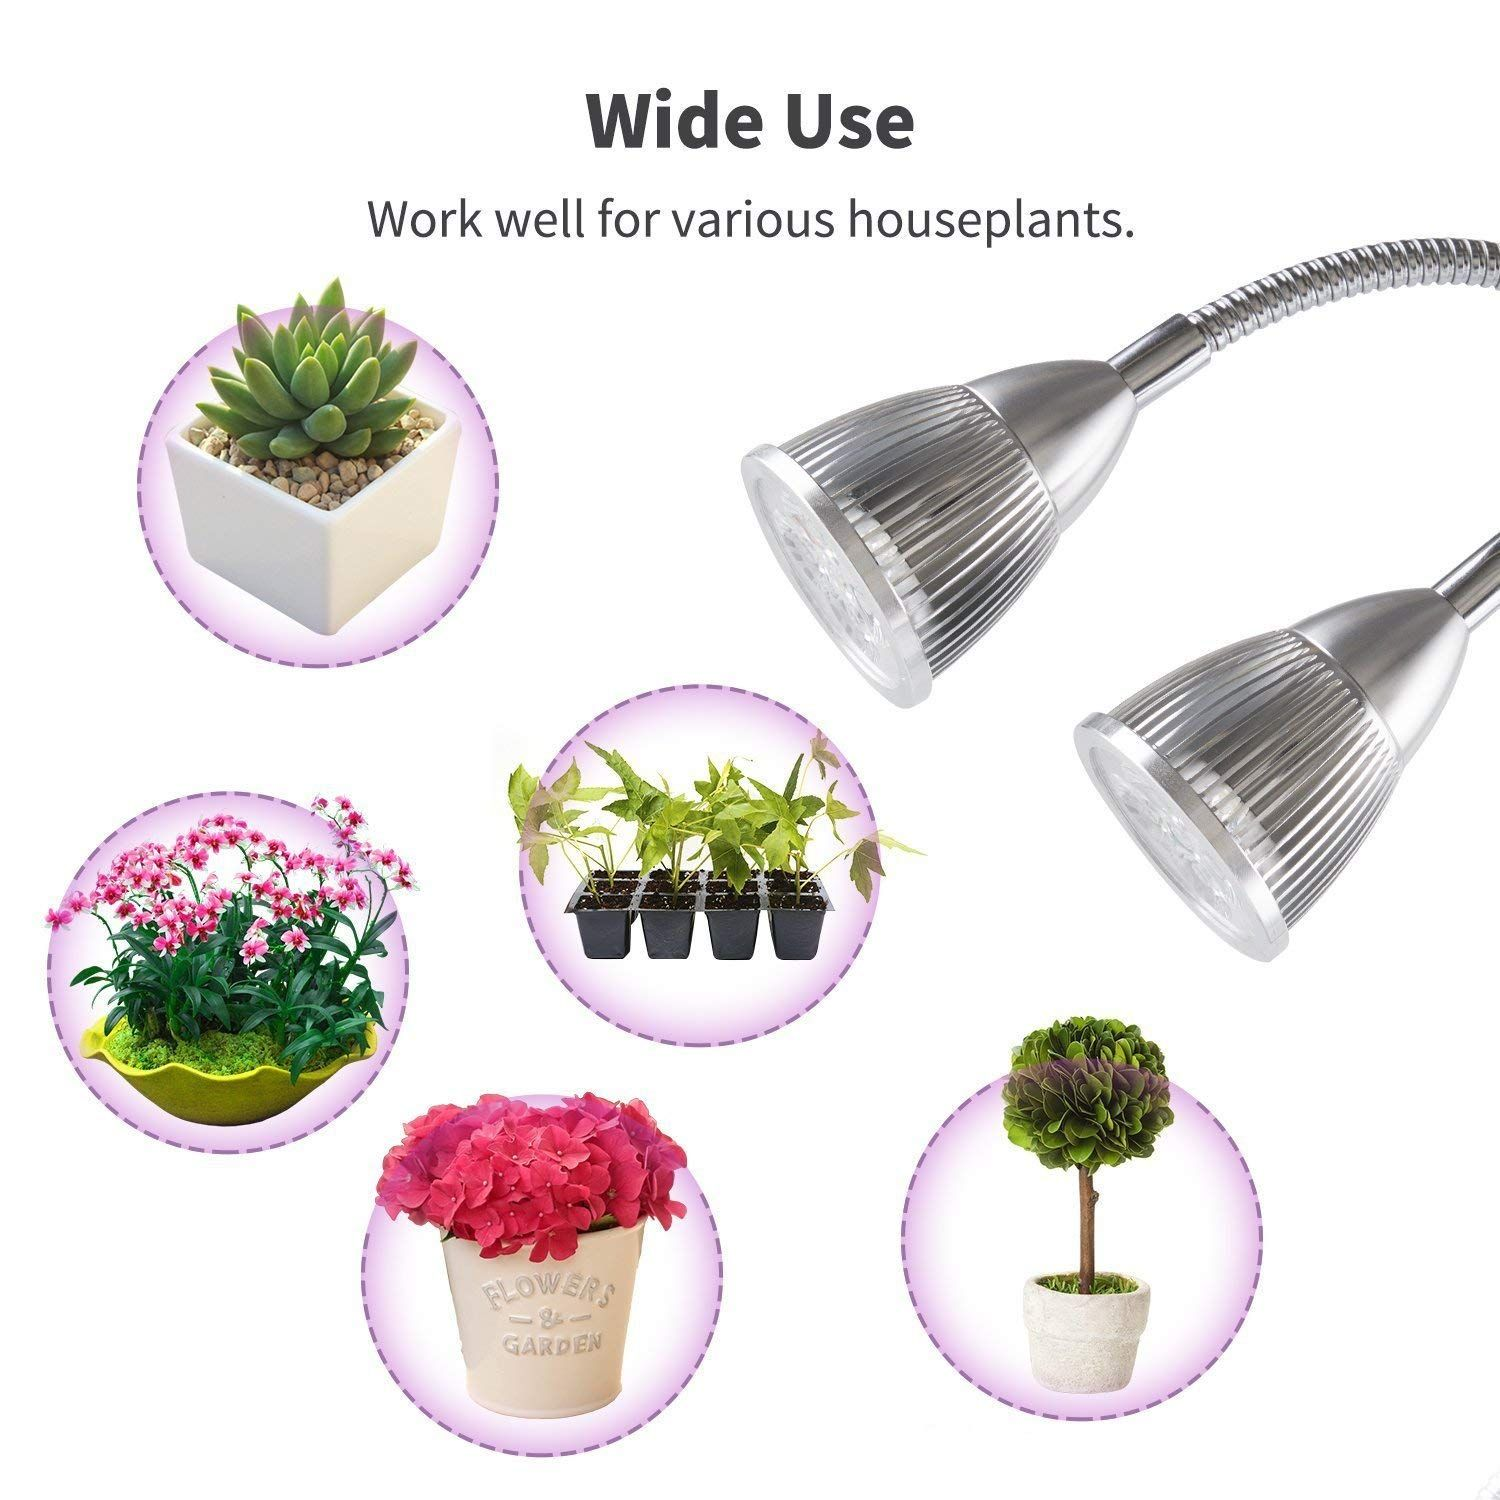 What Does Full Spectrum Mean Need 5 Tester For This Grow Light It Is Free If You Need Pls Message M Grow Lights For Plants Hydroponic Gardening Hydroponics